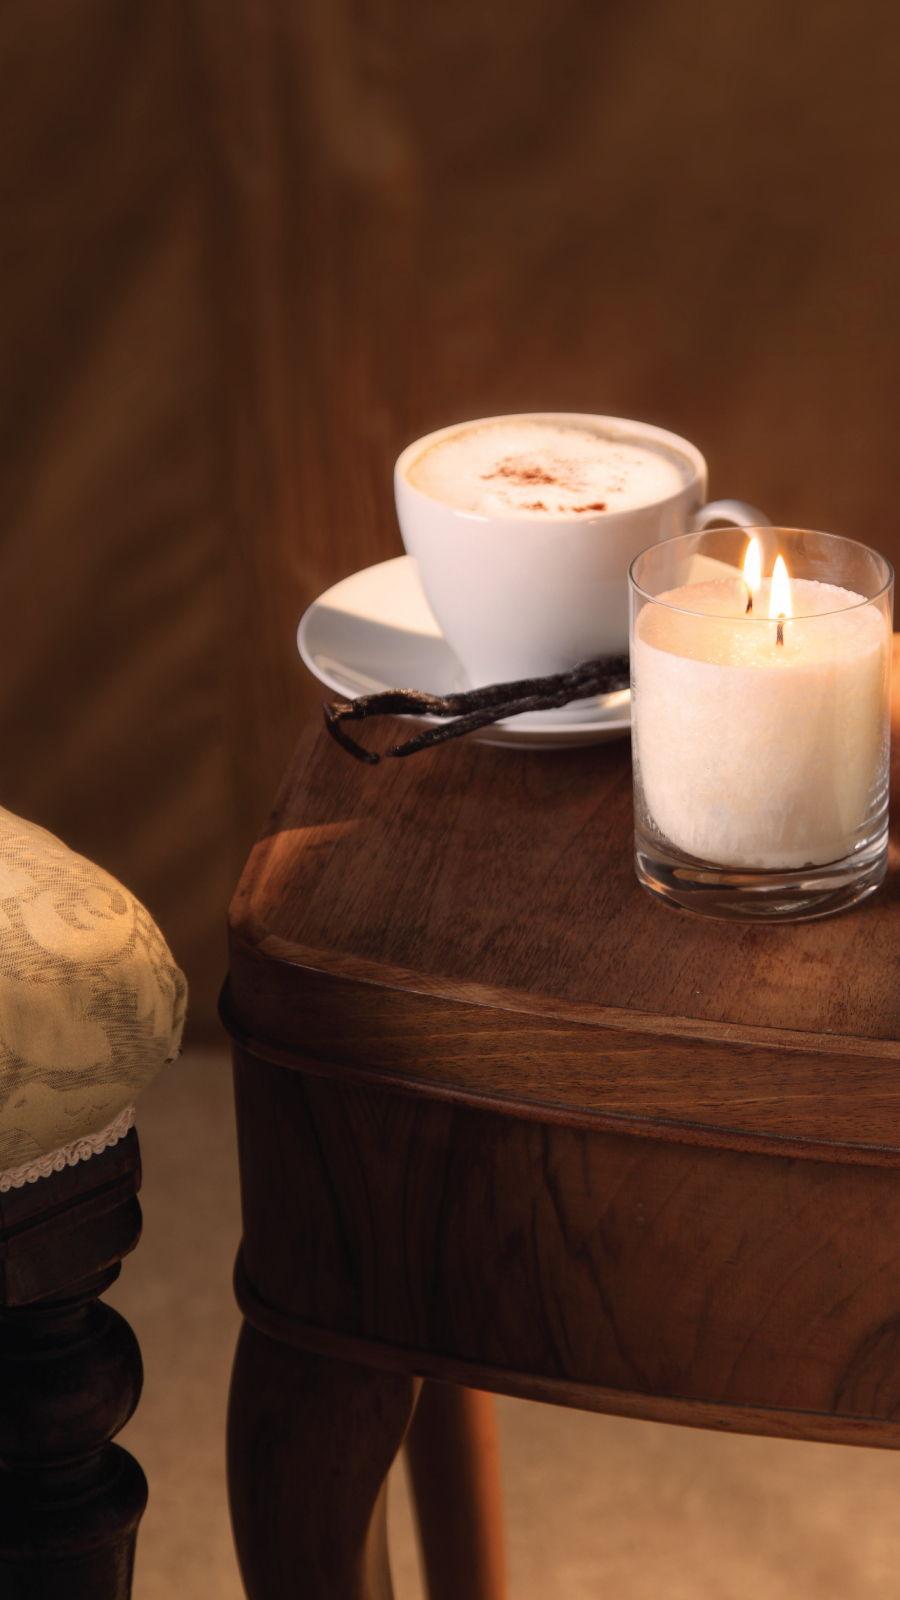 Snow Crystal Candle Large Chair Coffee Table Cognac Vanilla 9 16